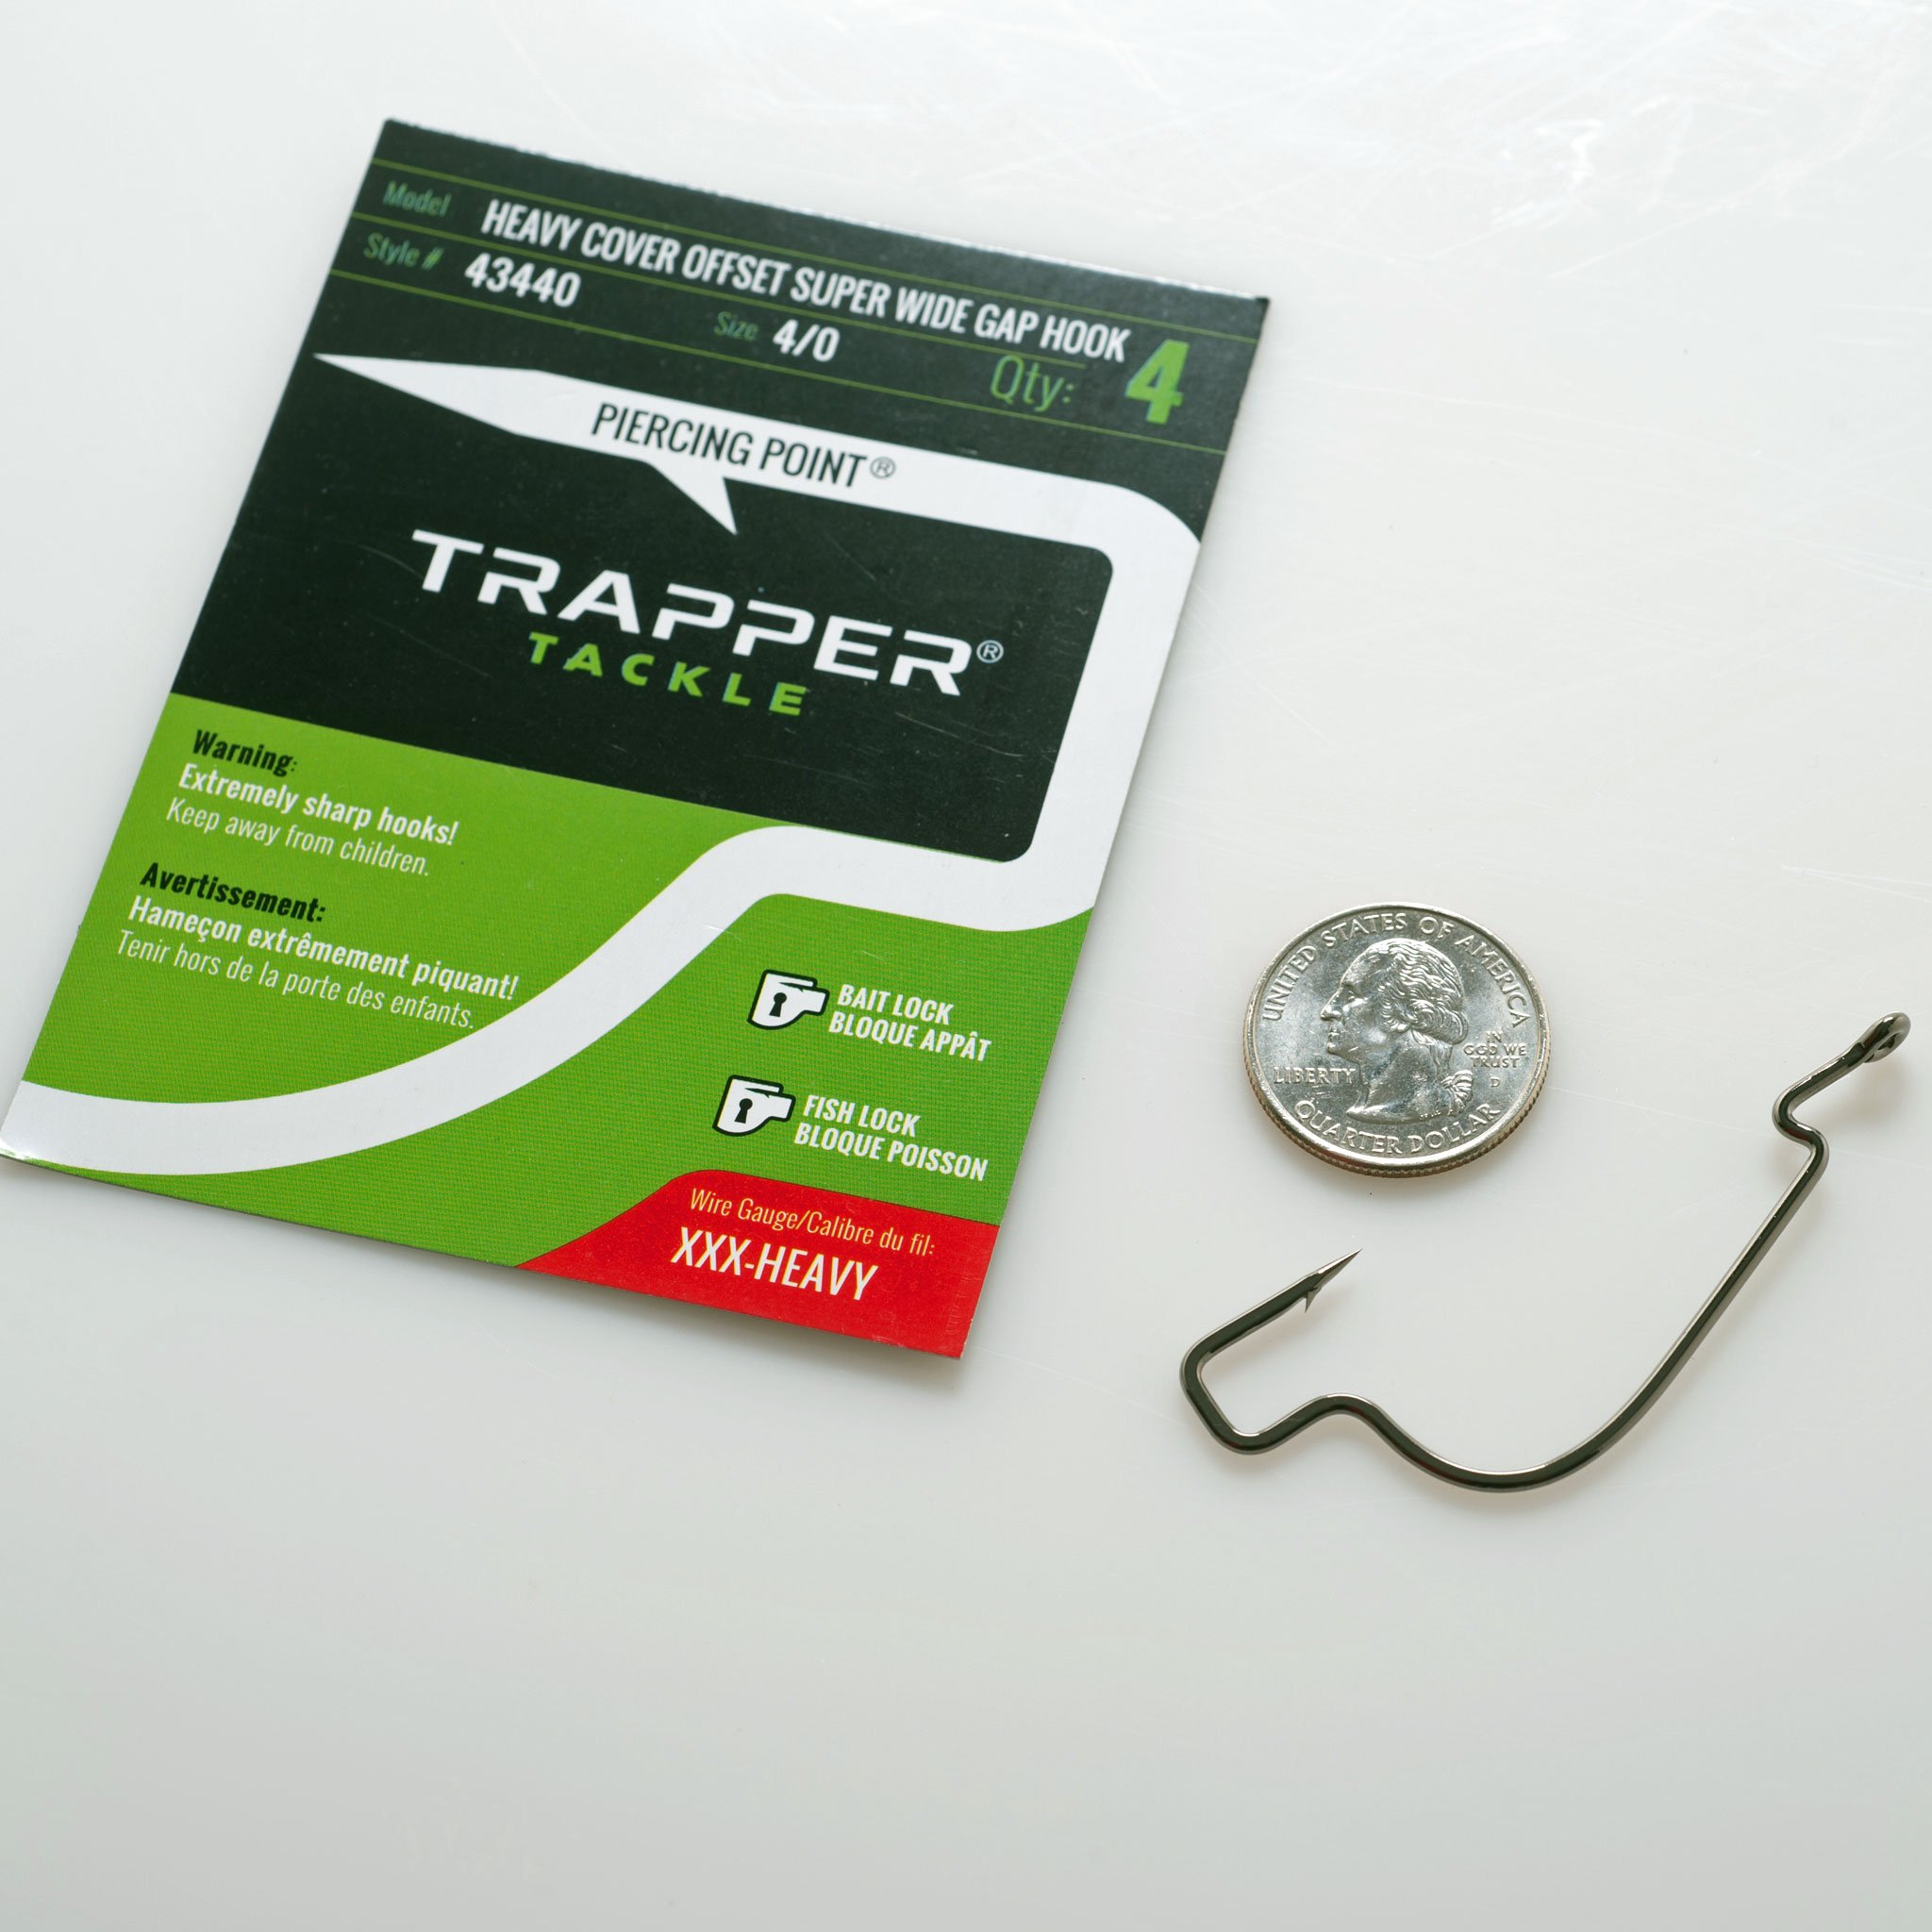 TRAPPER HEAVY COVER OFFSET SUPER WIDE GAP HOOK 4